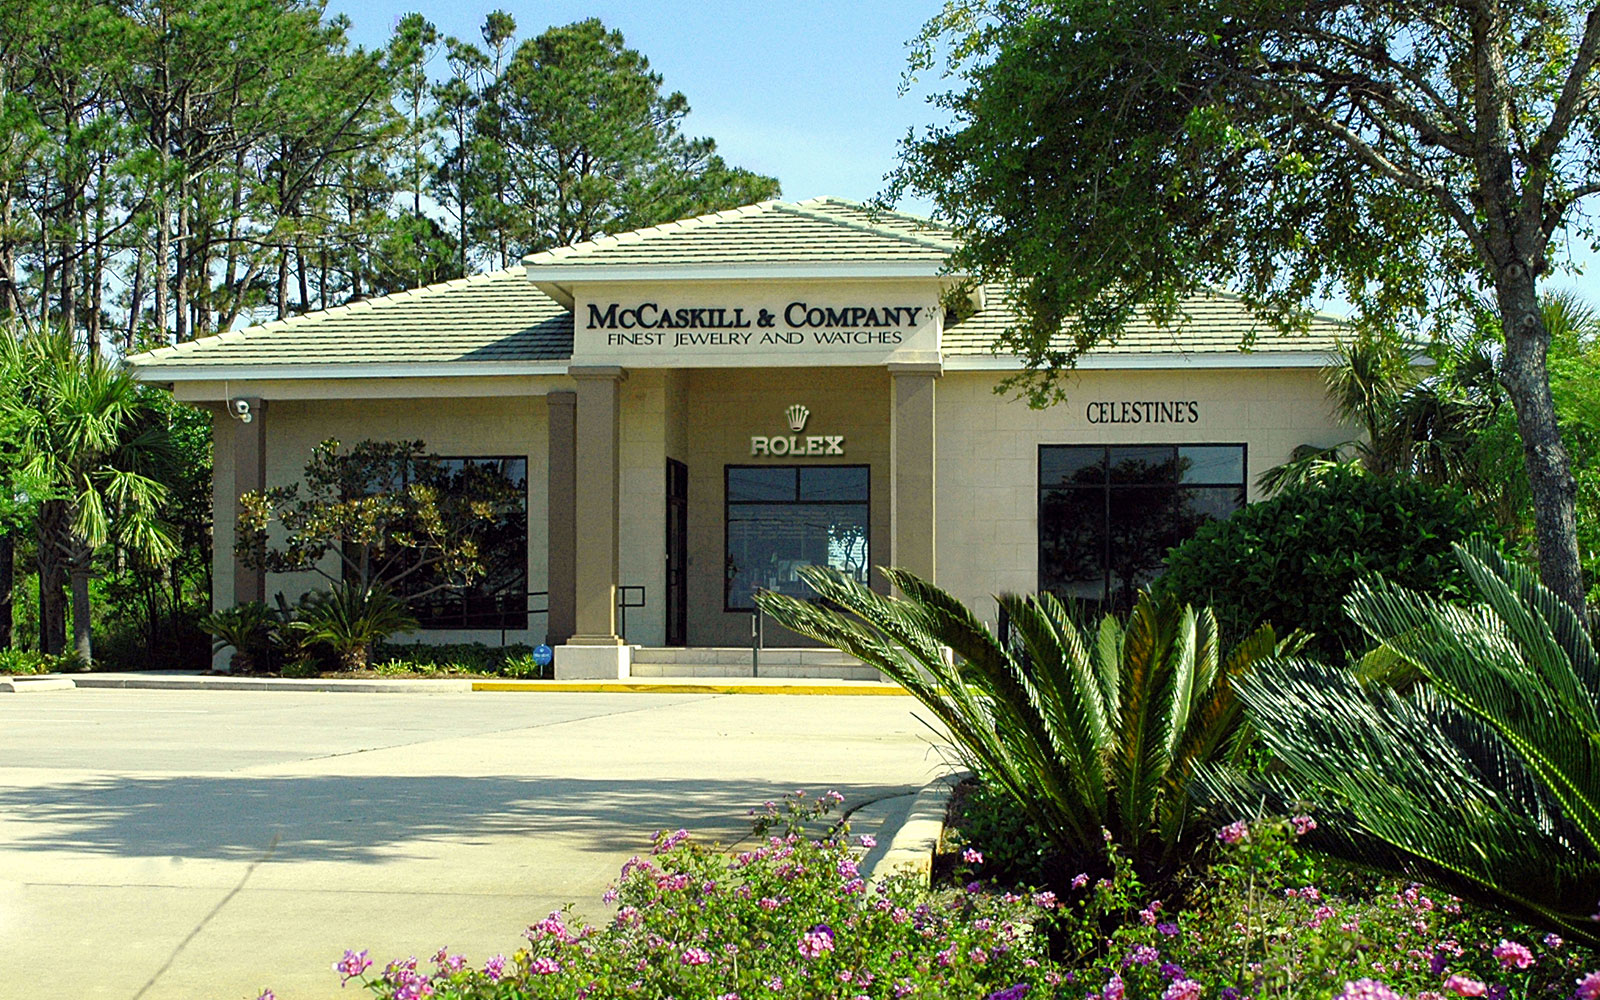 About McCaskill & Company Jewelers